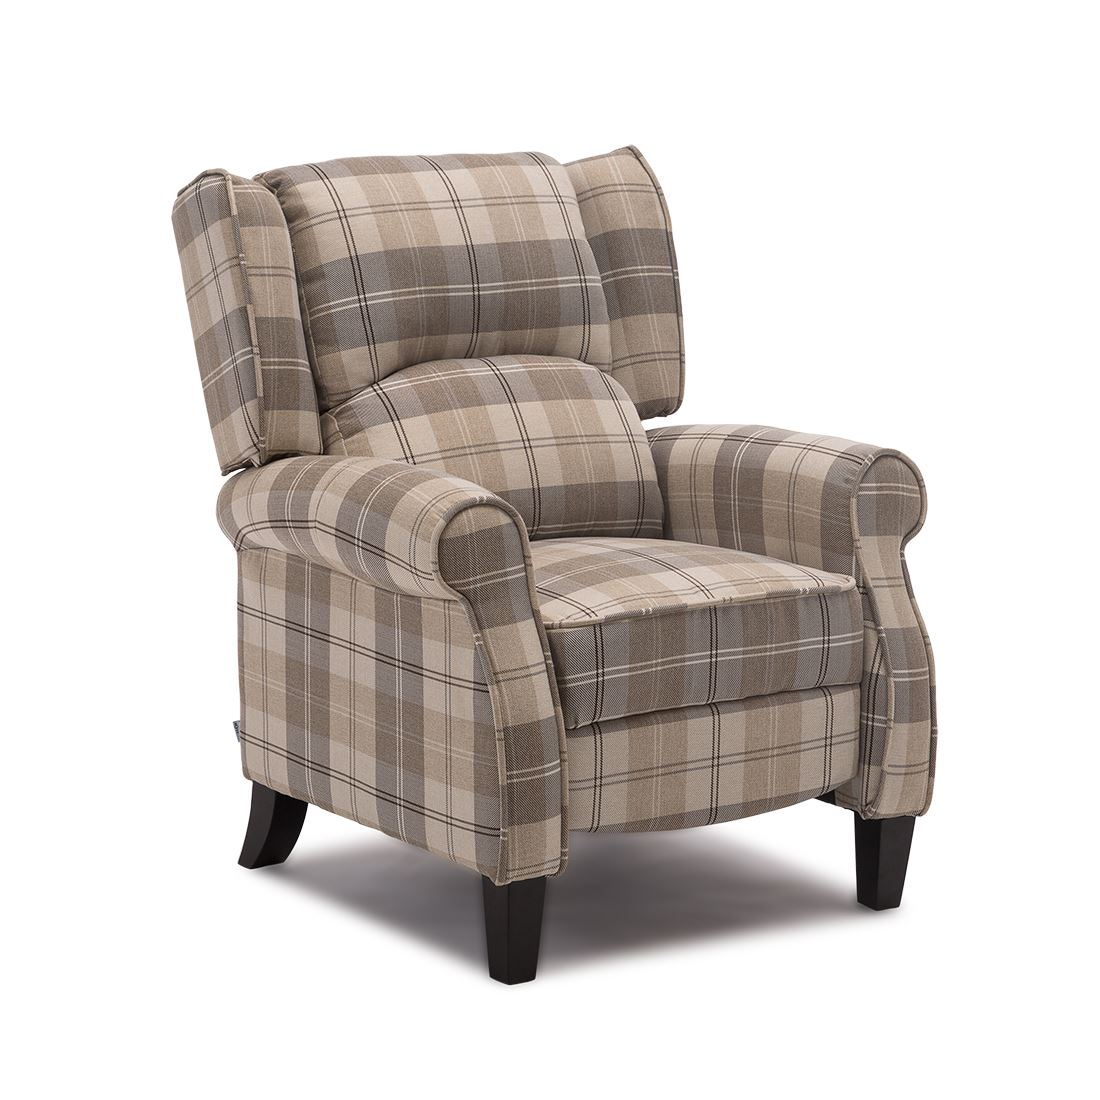 EATON WING BACK FIRESIDE CHECK FABRIC RECLINER ARMCHAIR